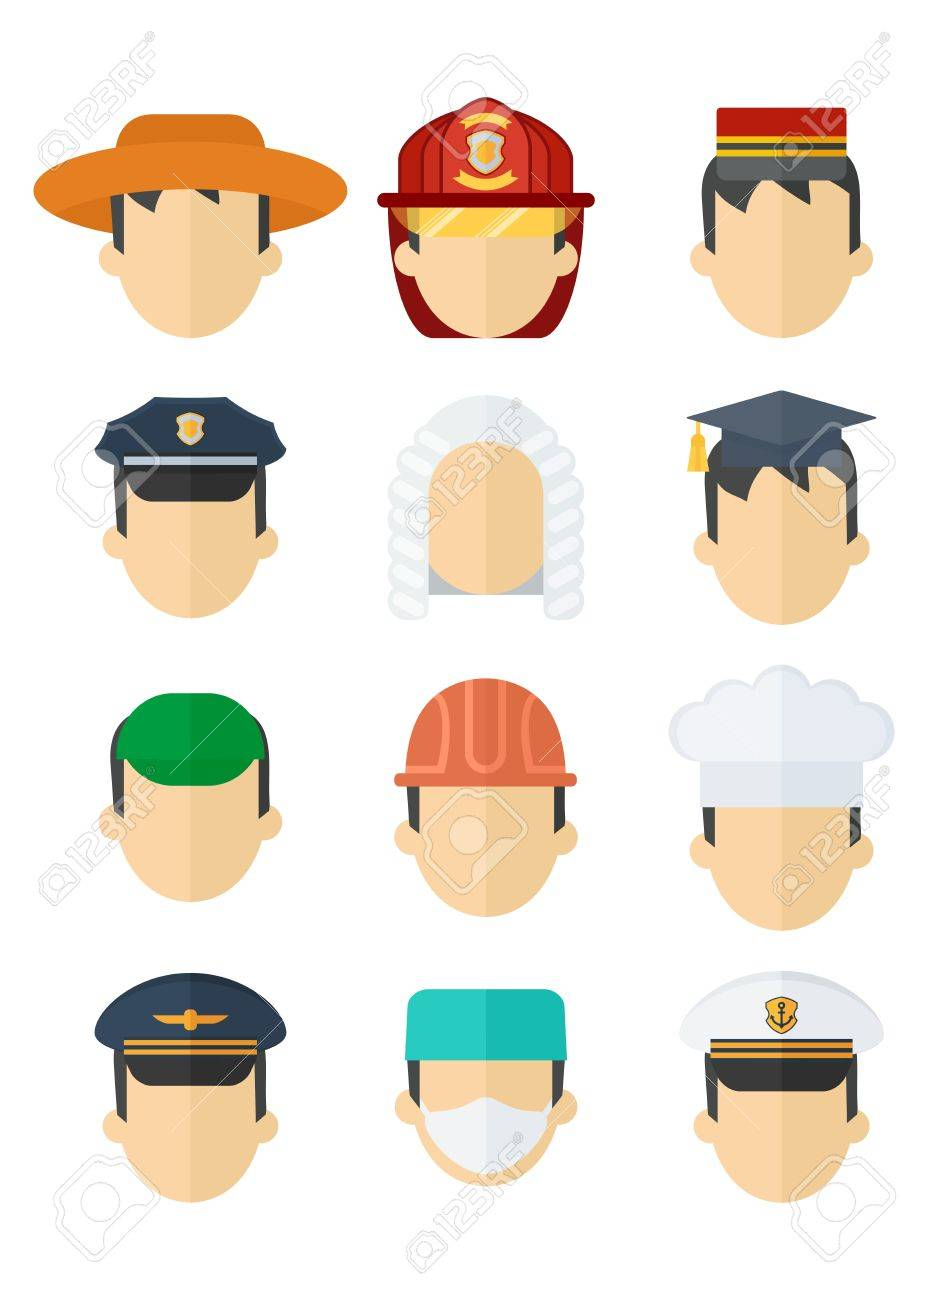 42b8c2b83c9 Flat cartoon vector illustration. Set of hats of different professions.  Work wear and uniform element icons. Objects isolated